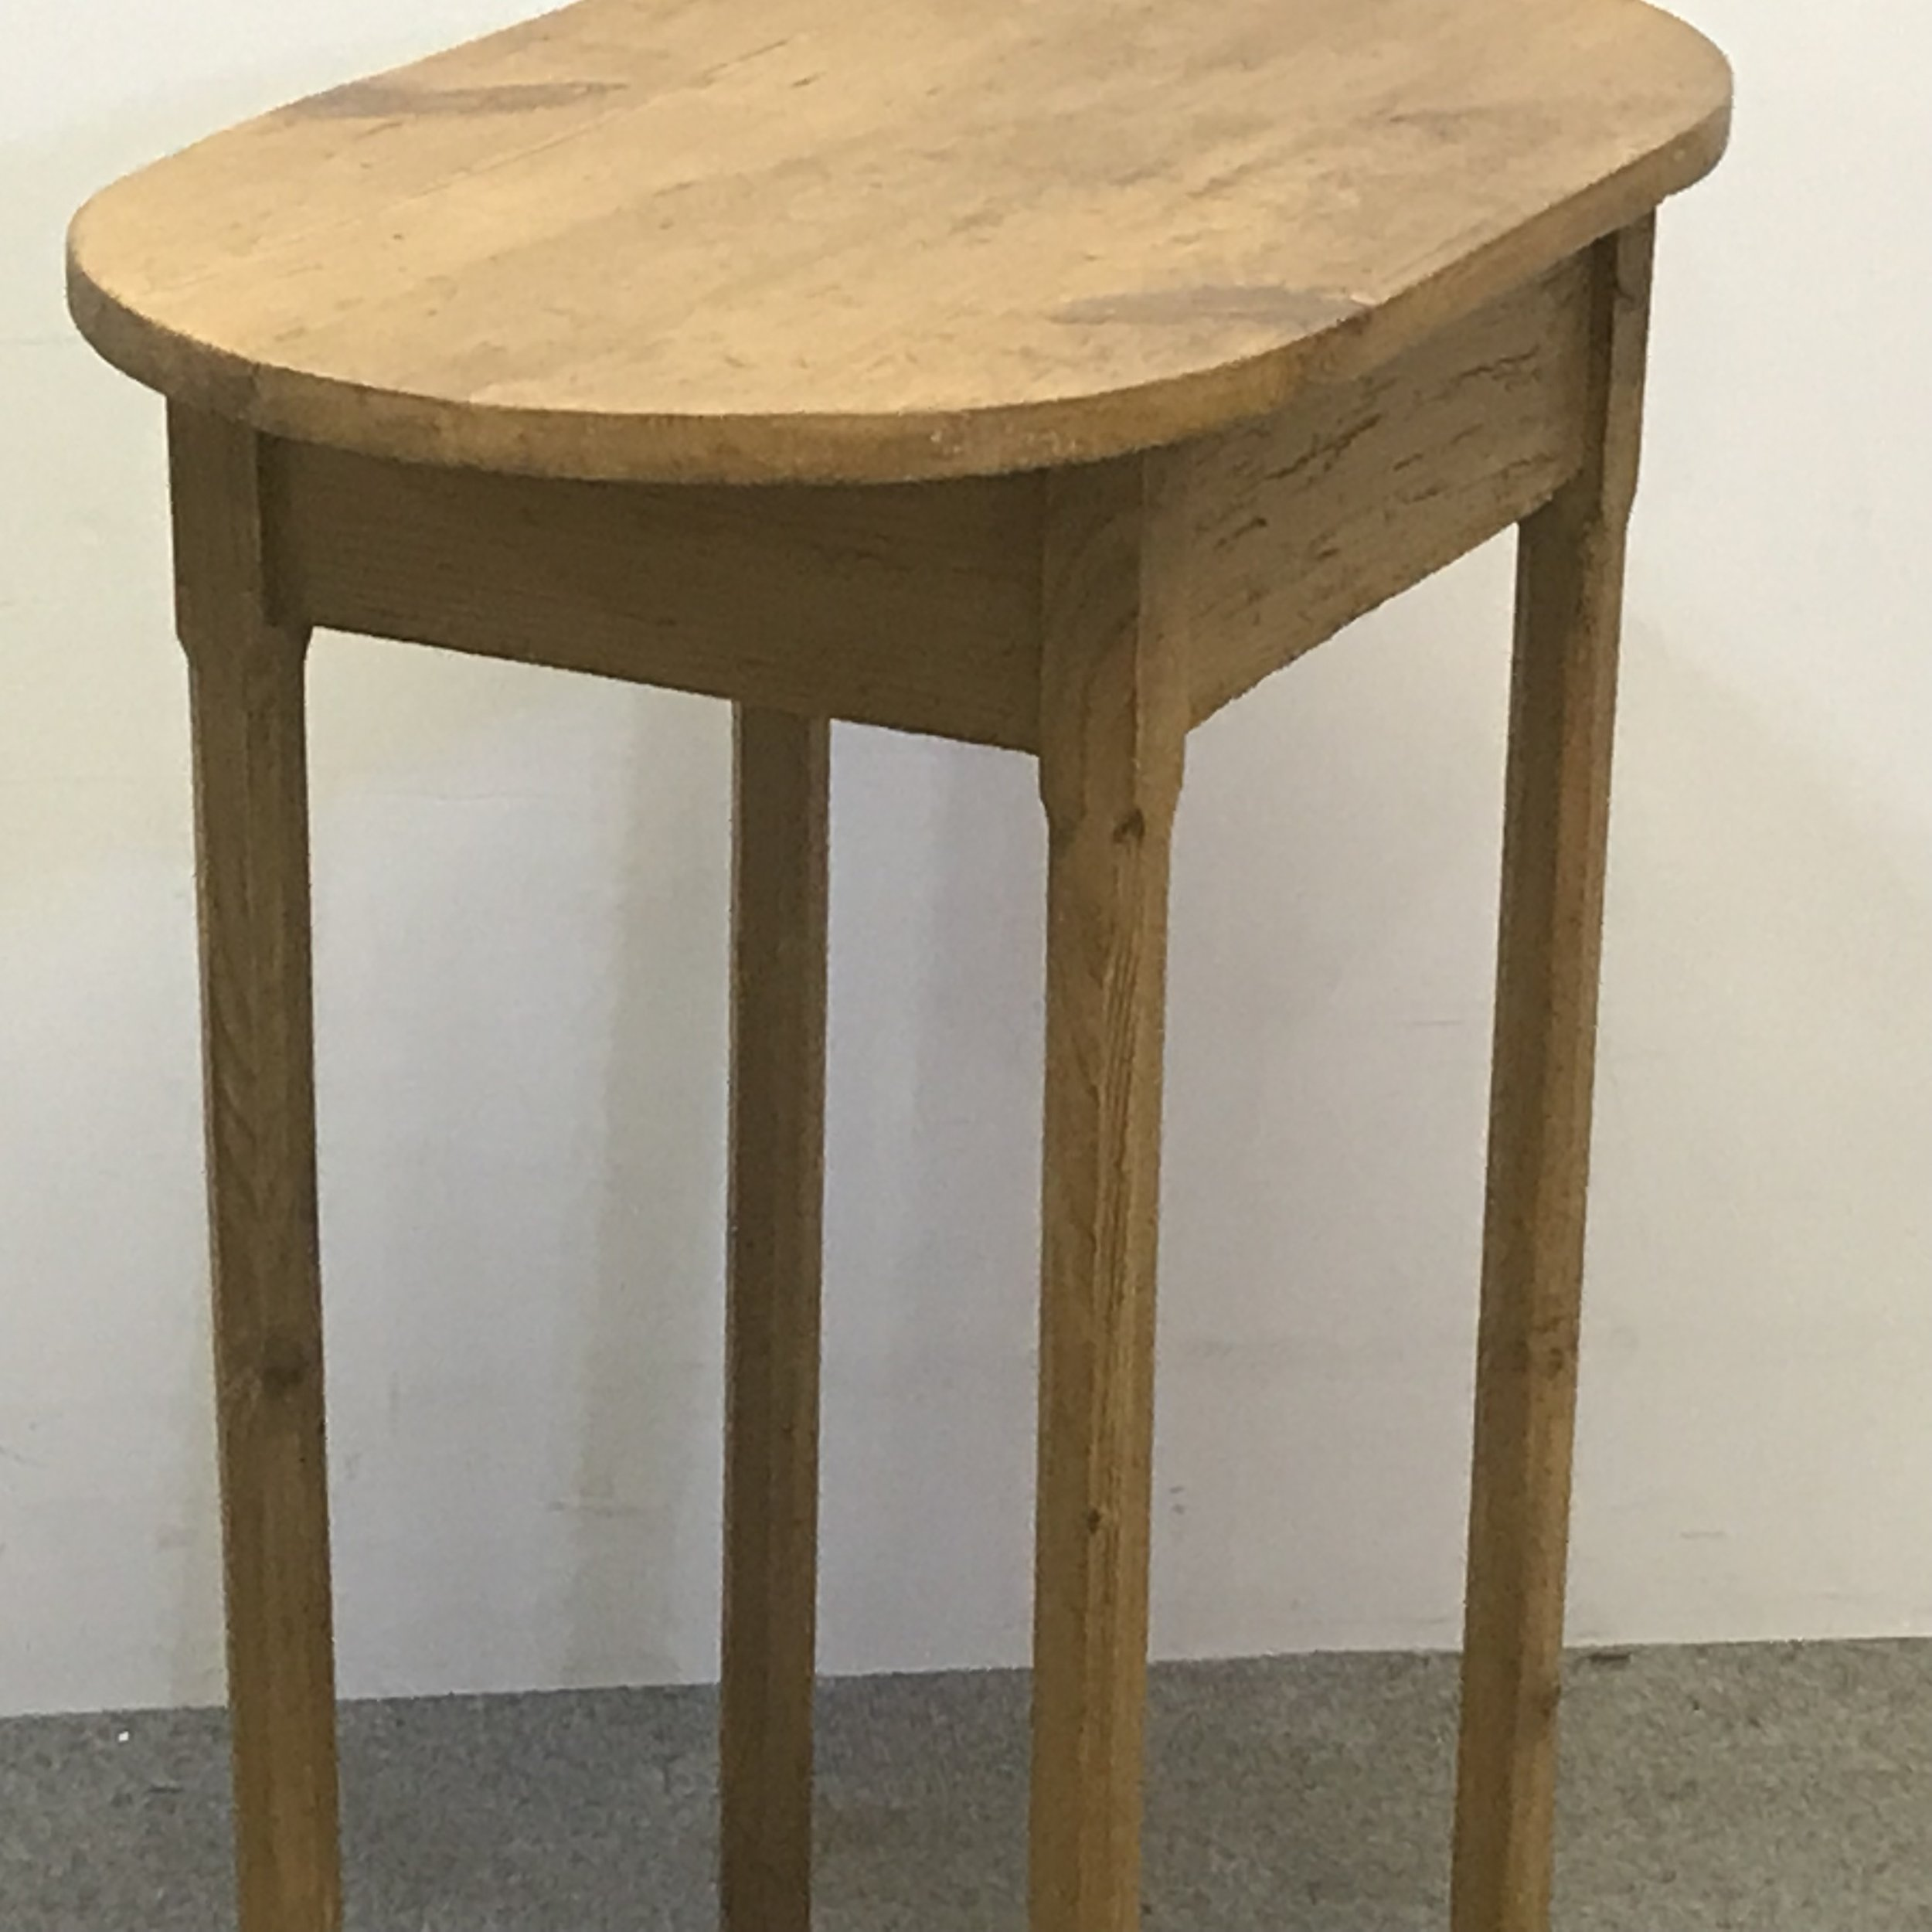 Small oval pine table with slim octagonal legs